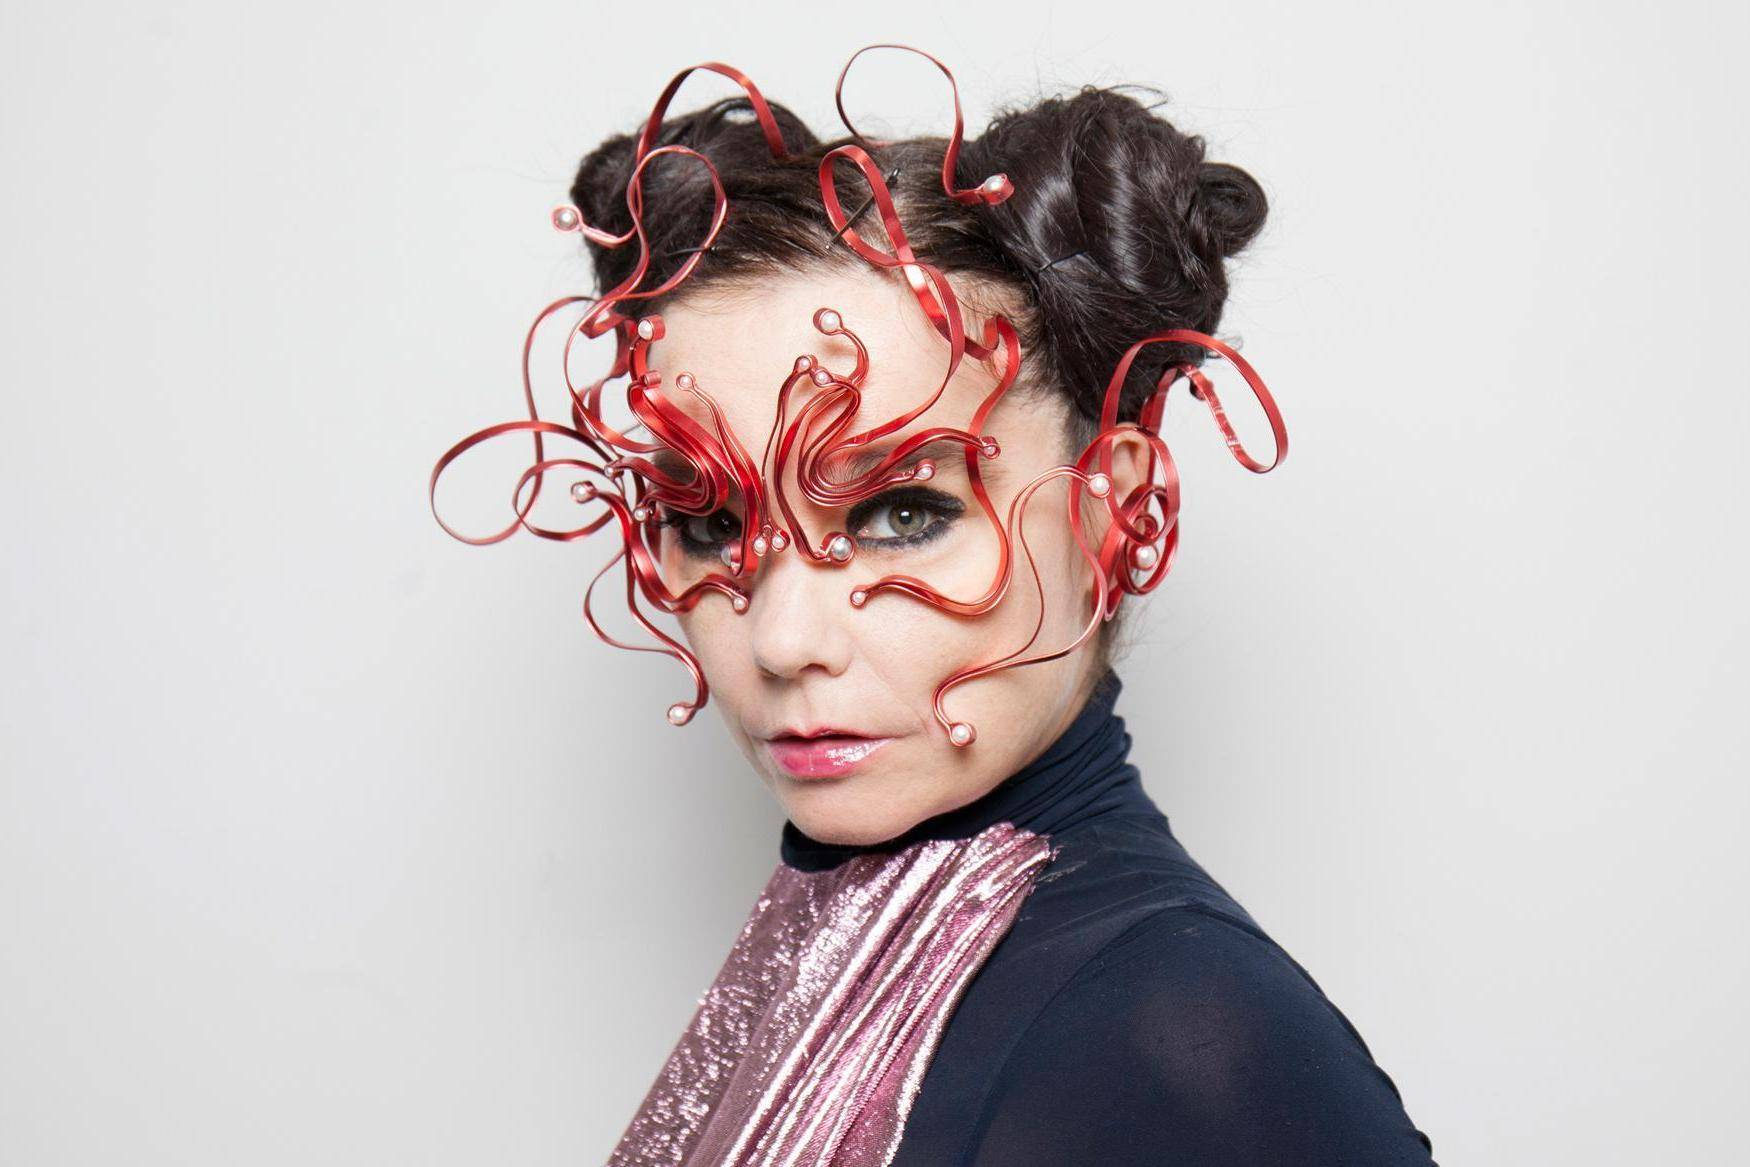 Bjork Song of the Day